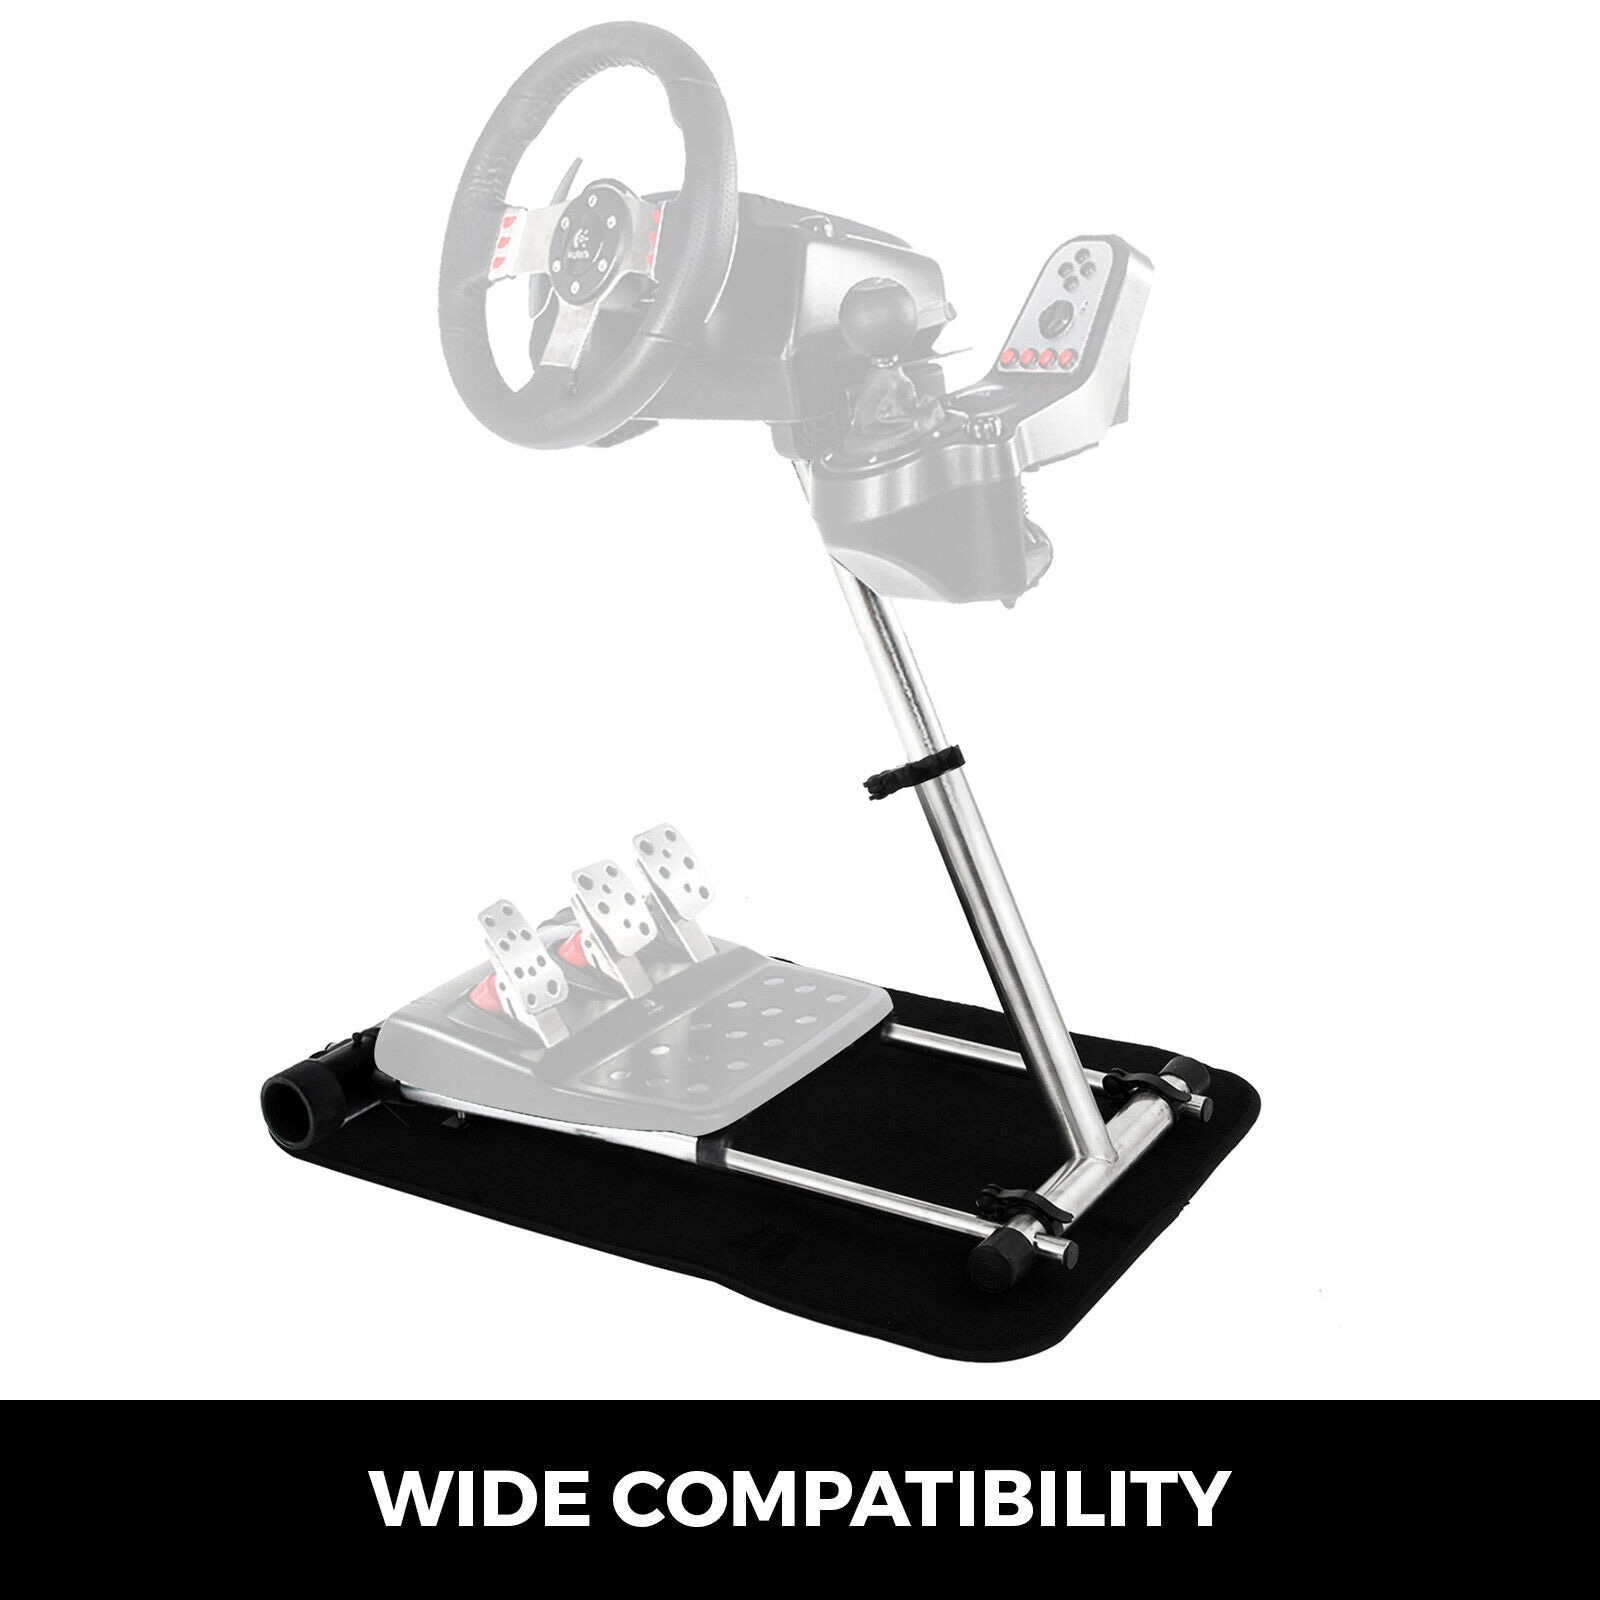 racing wheel stand,stainless steel,fully adjustable